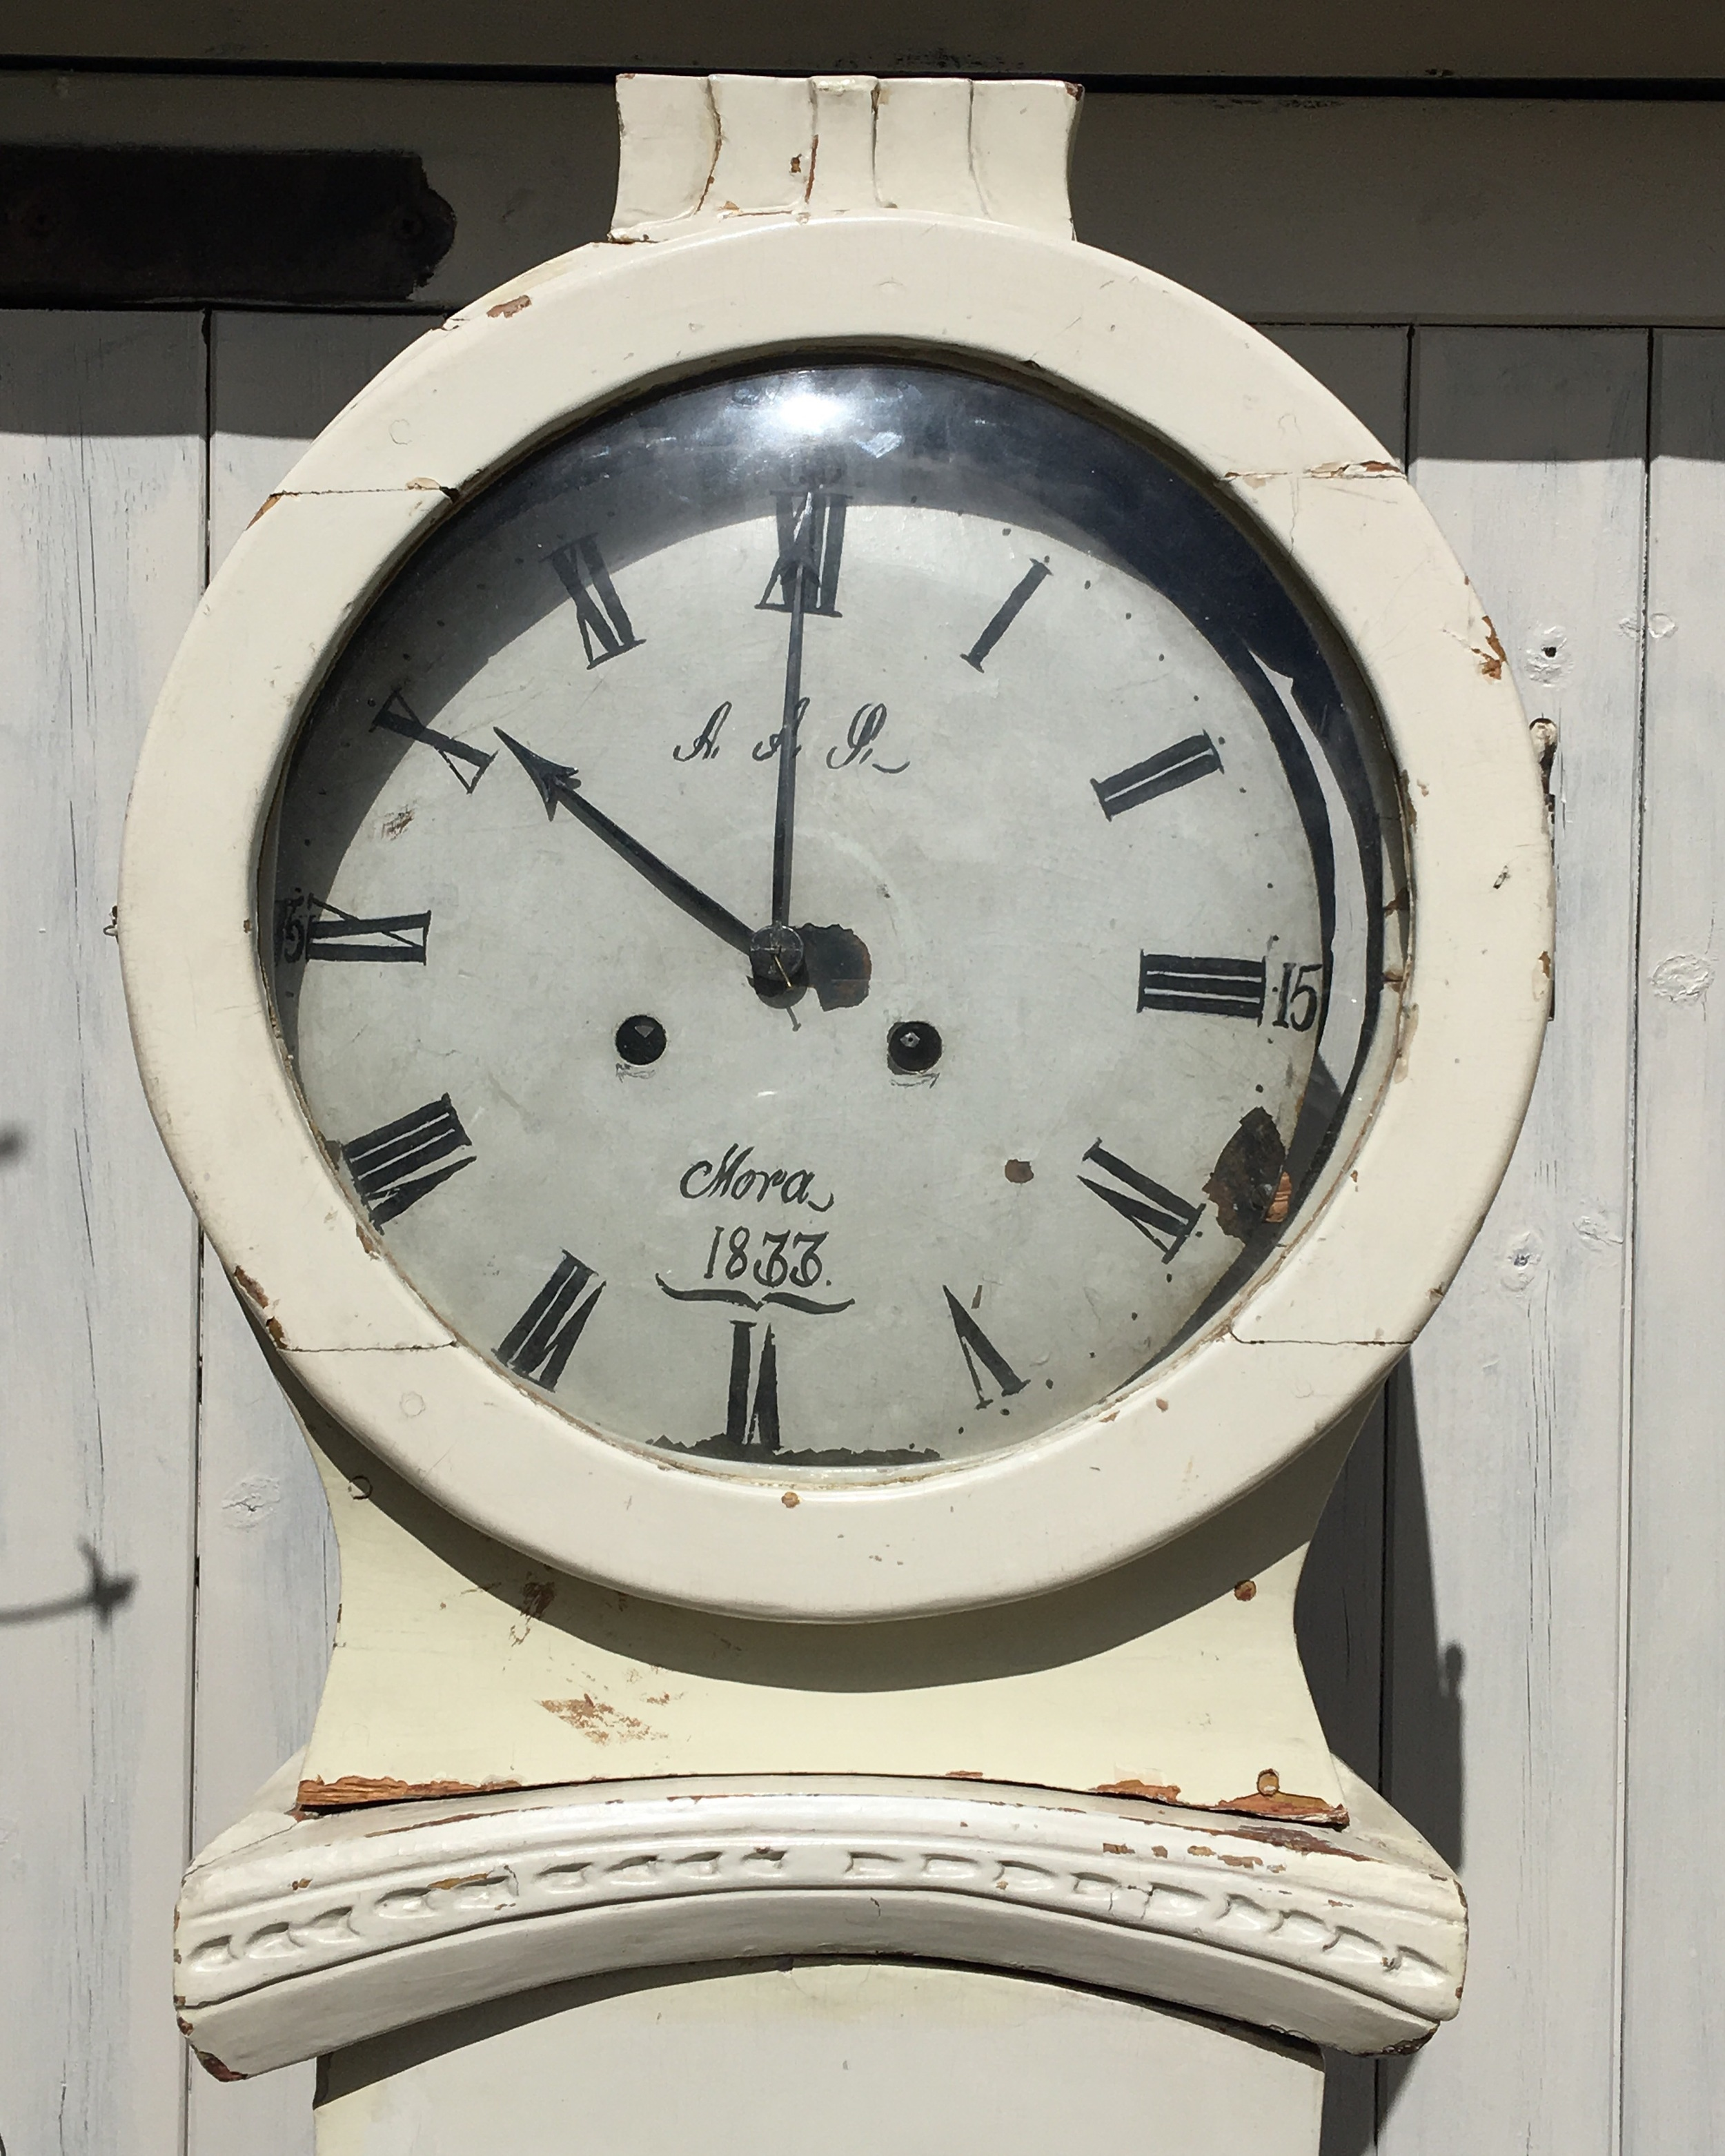 The left mora clock , dated to 1833